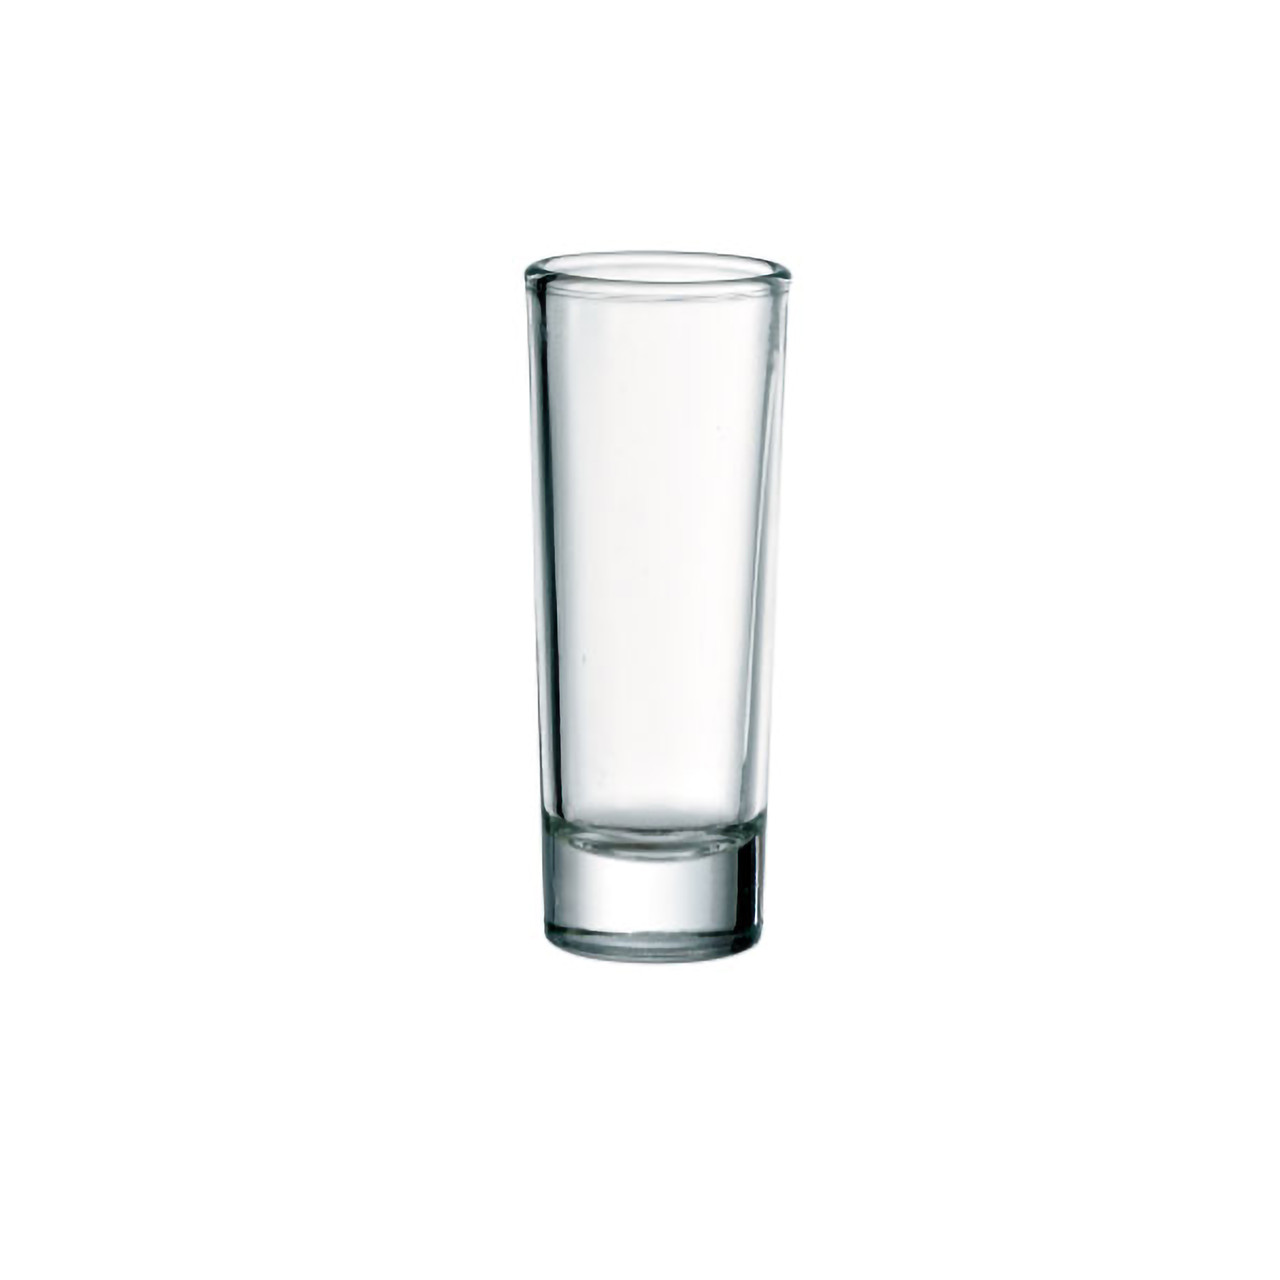 Cylo 2 Shooter Glass -4oz Dia:1.6in H:4.08in